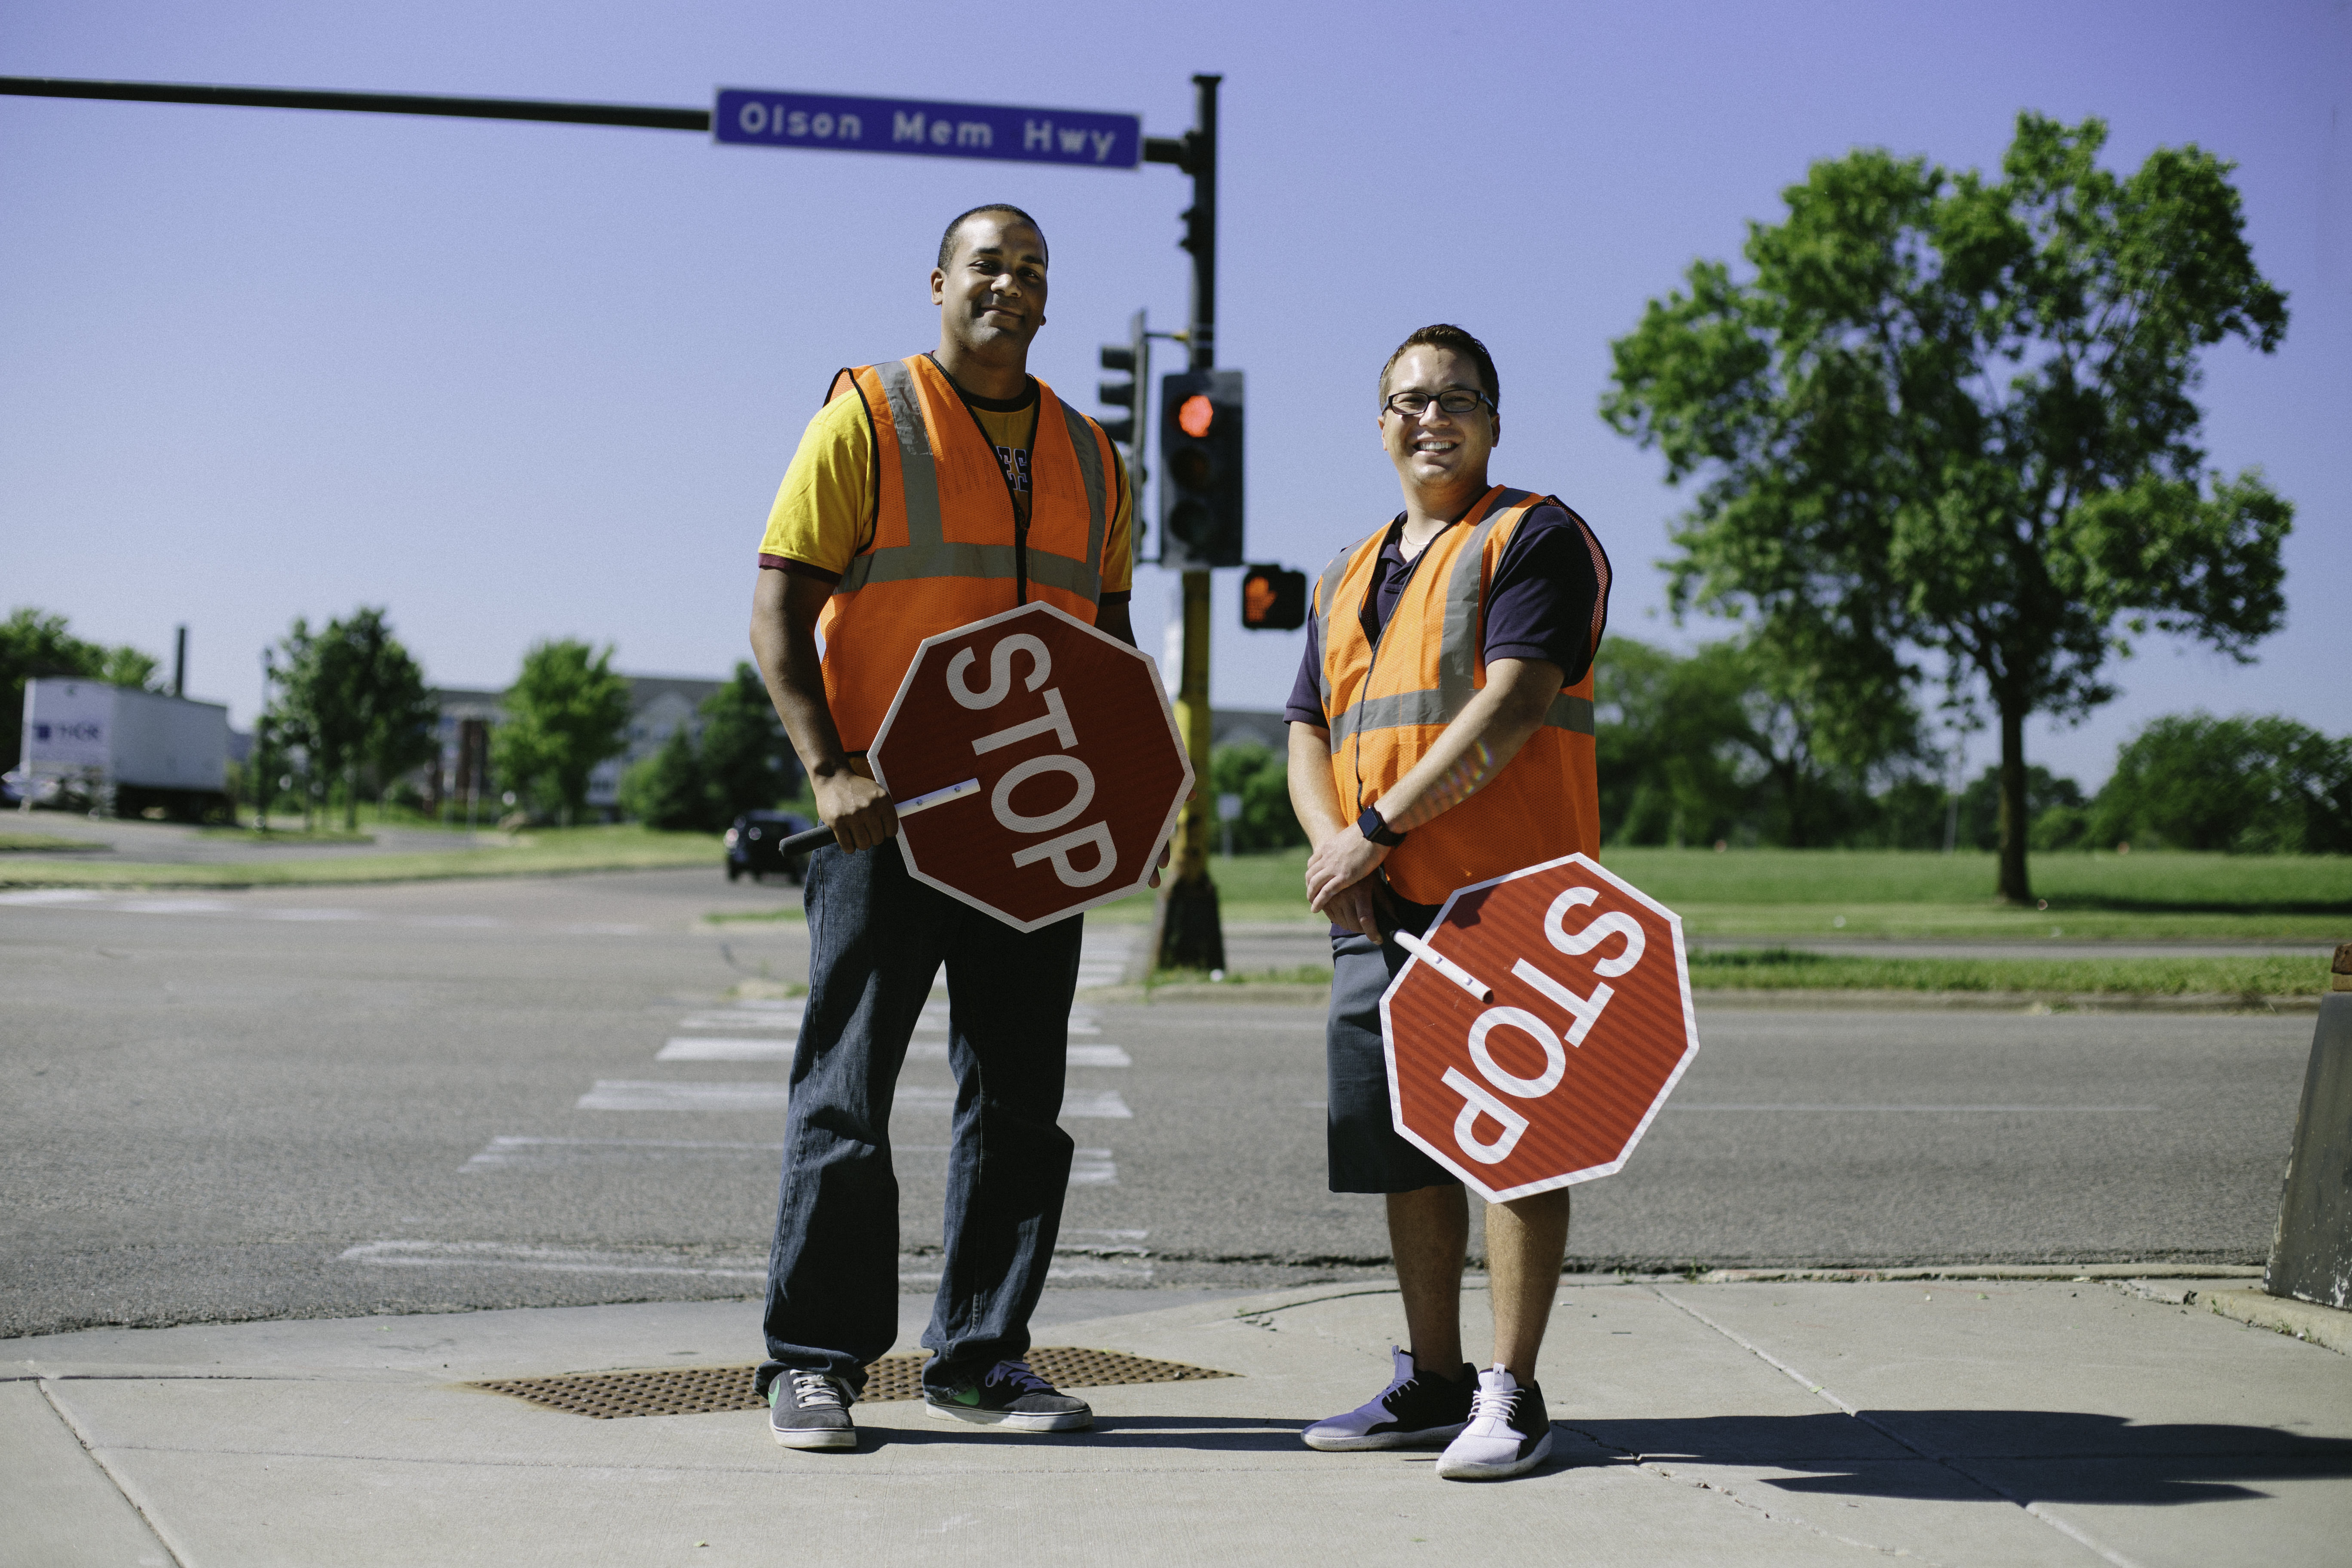 Two adults wearing reflective vests stand near a crosswalk and hold handheld stop signs